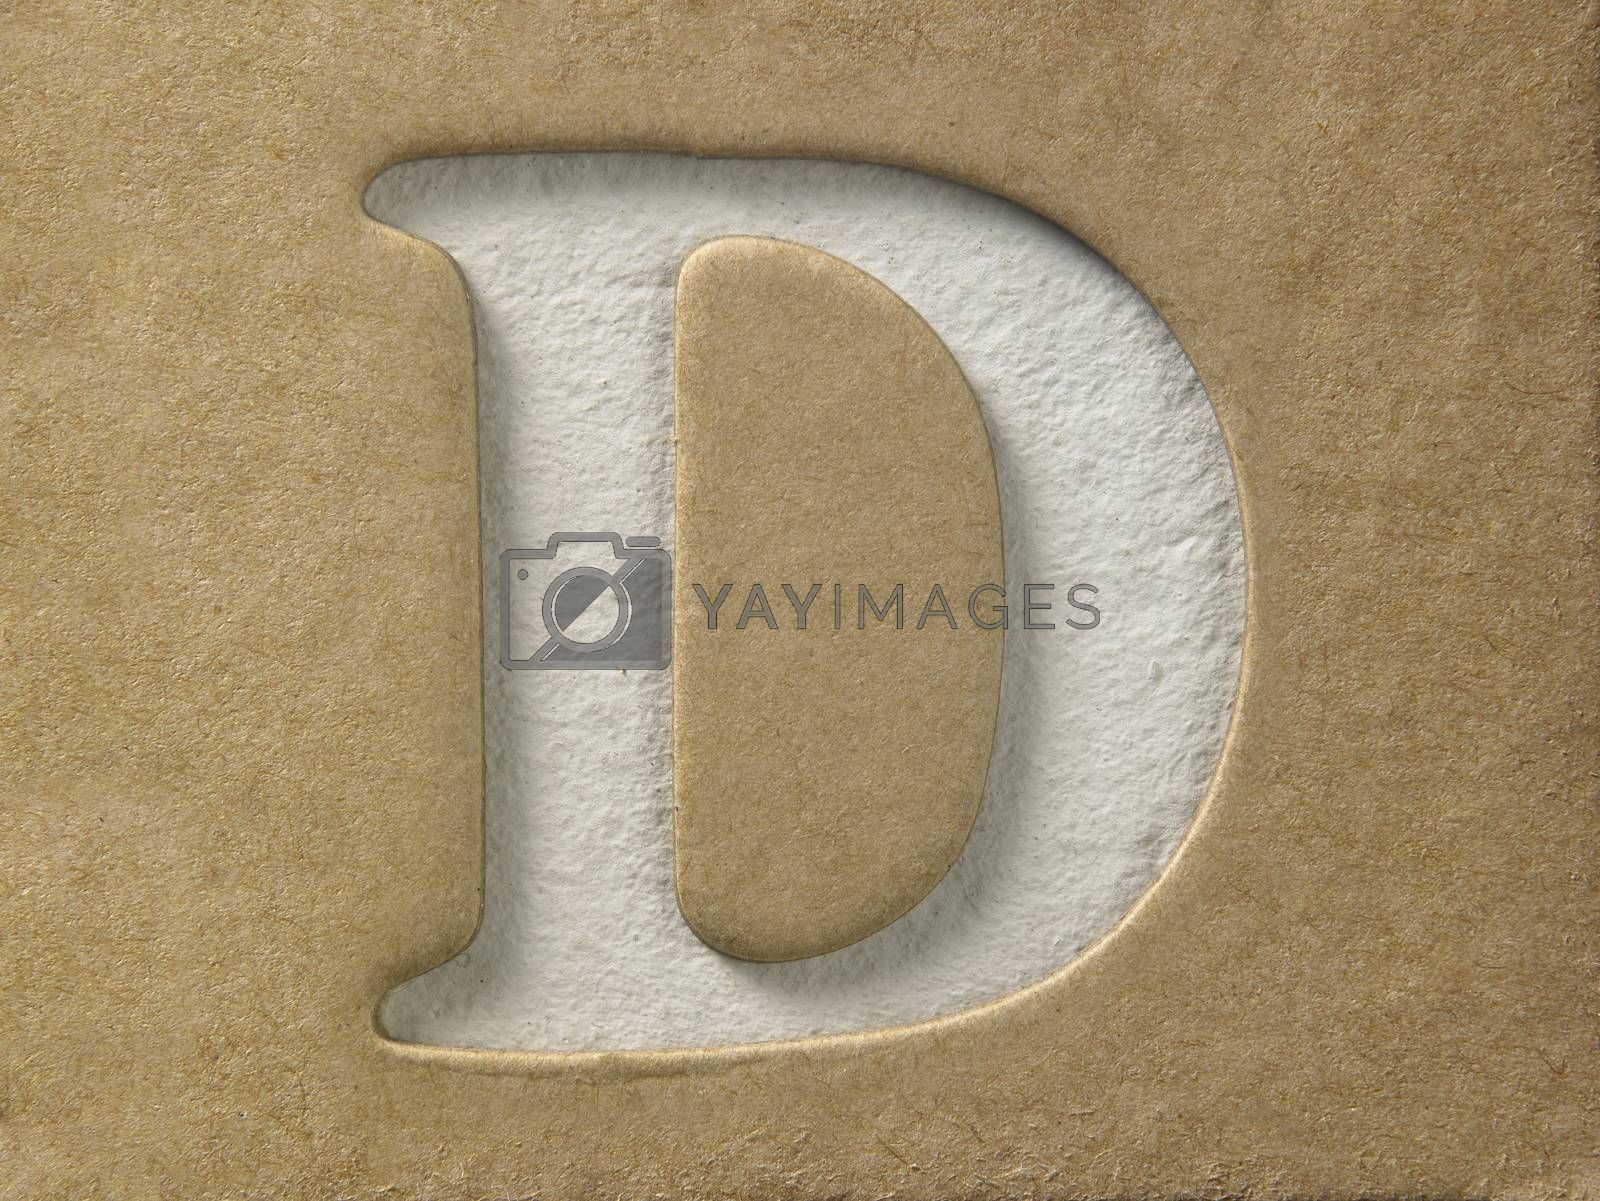 cut out alphabet d on the brown cardboard